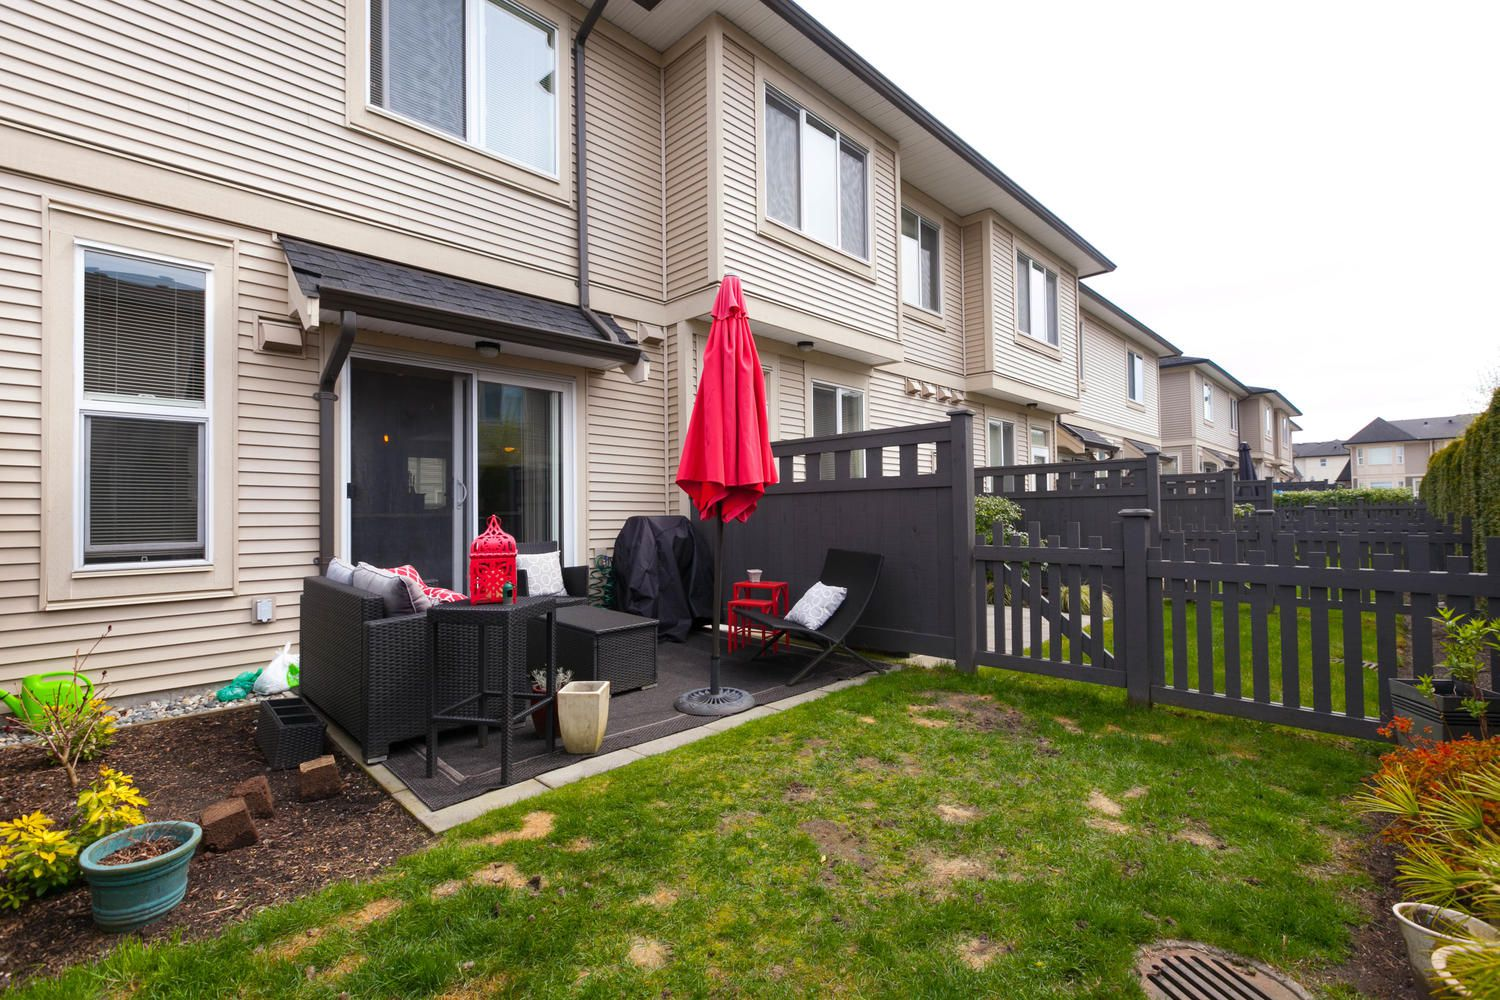 """Photo 37: Photos: 97 7938 209 Street in Langley: Willoughby Heights Townhouse for sale in """"Red Maple Park"""" : MLS®# R2260950"""